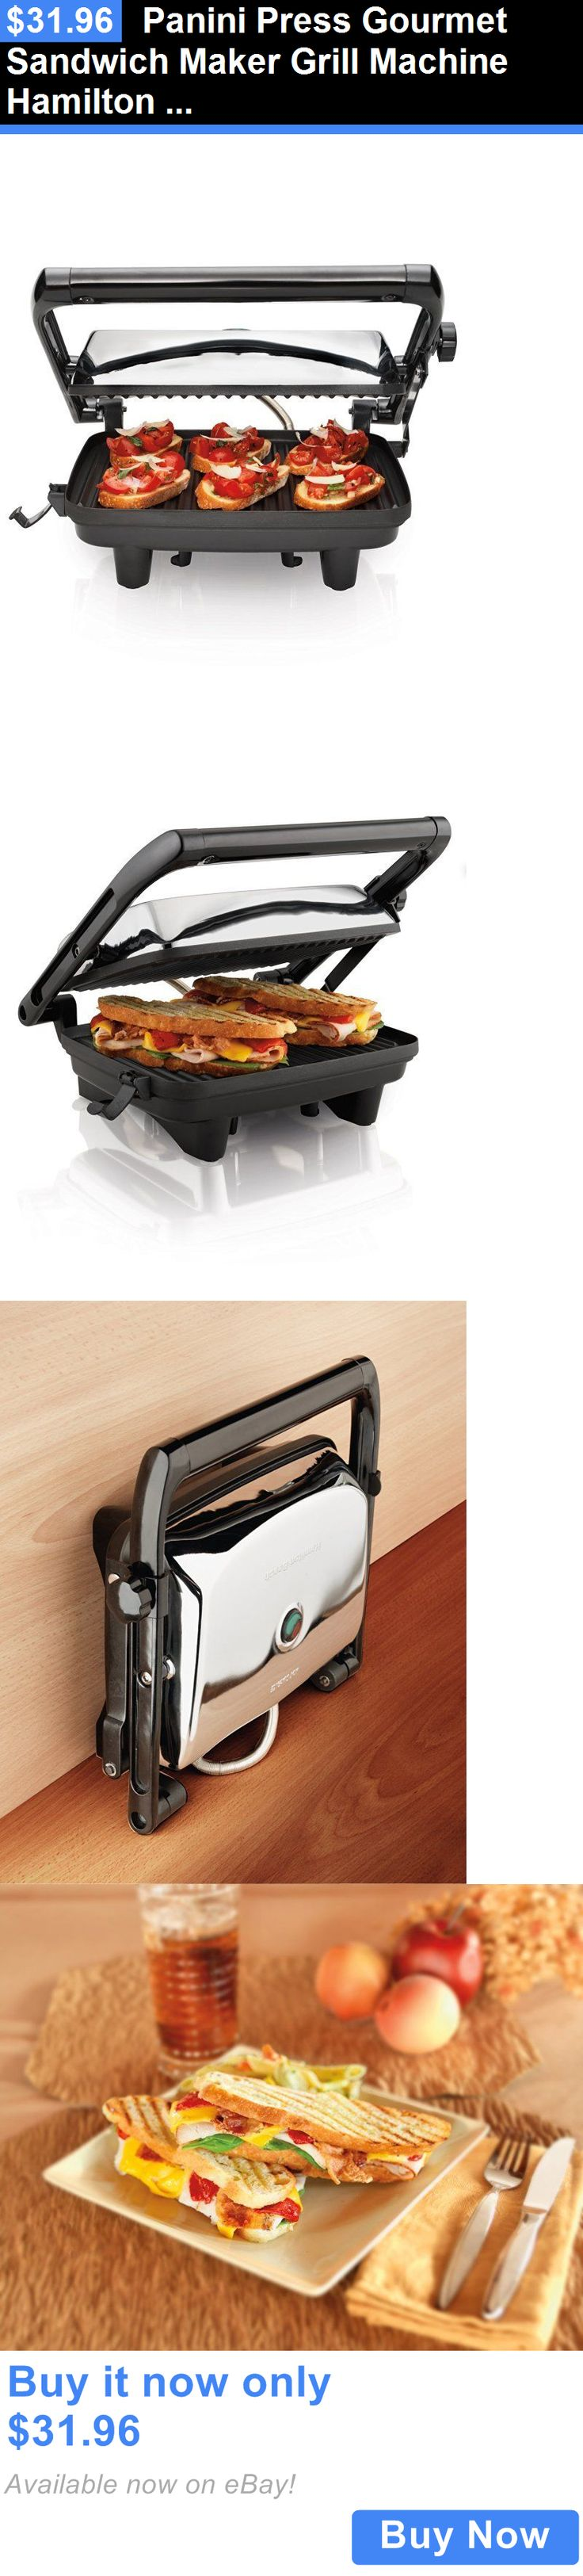 appliances: Panini Press Gourmet Sandwich Maker Grill Machine Hamilton Beach Factory Sealed BUY IT NOW ONLY: $31.96